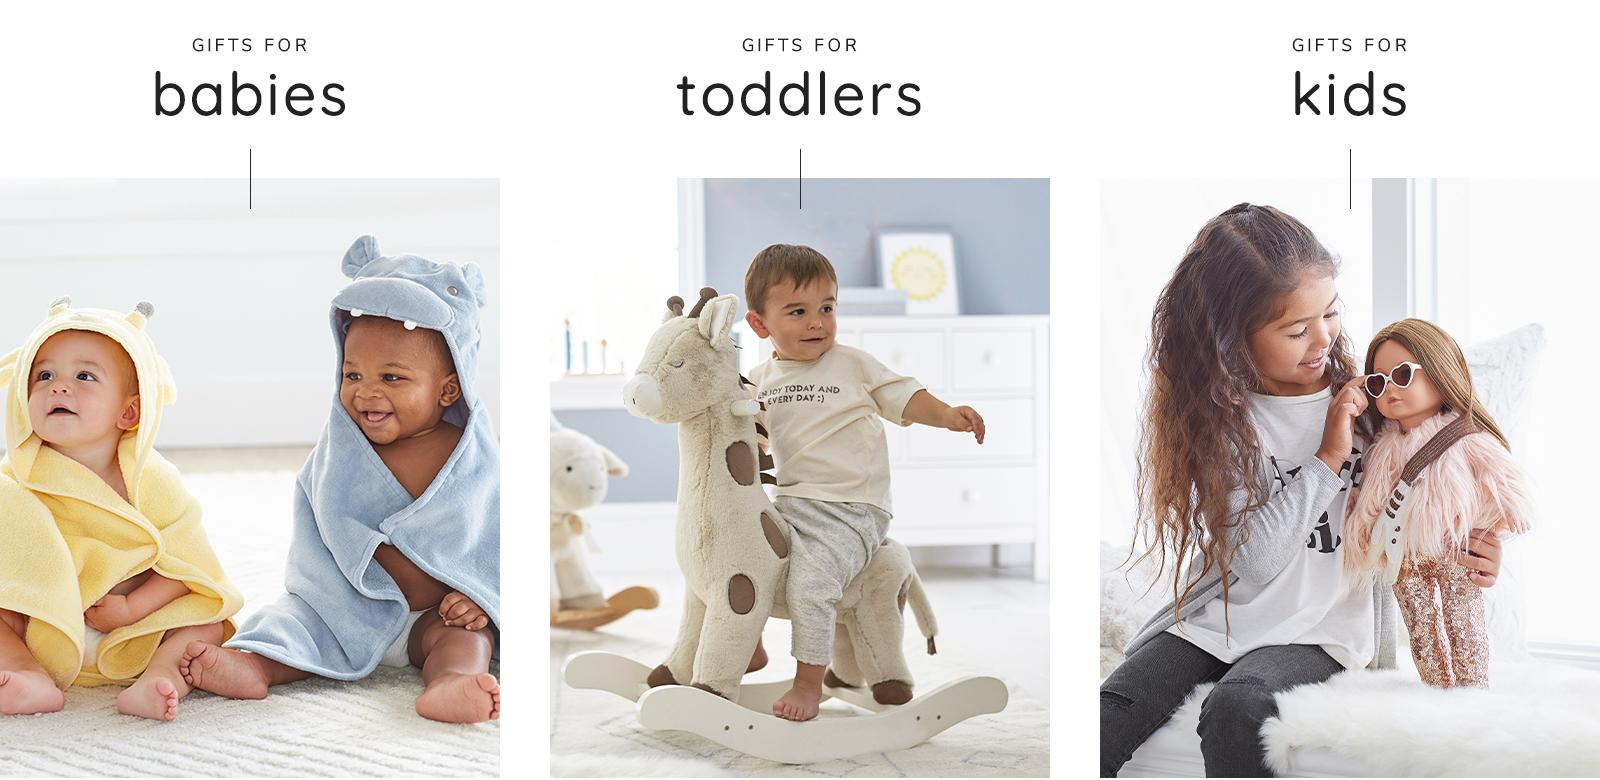 Gifts for Babies | Gifts for Toddlers | Gifts for Kids | Shop Now